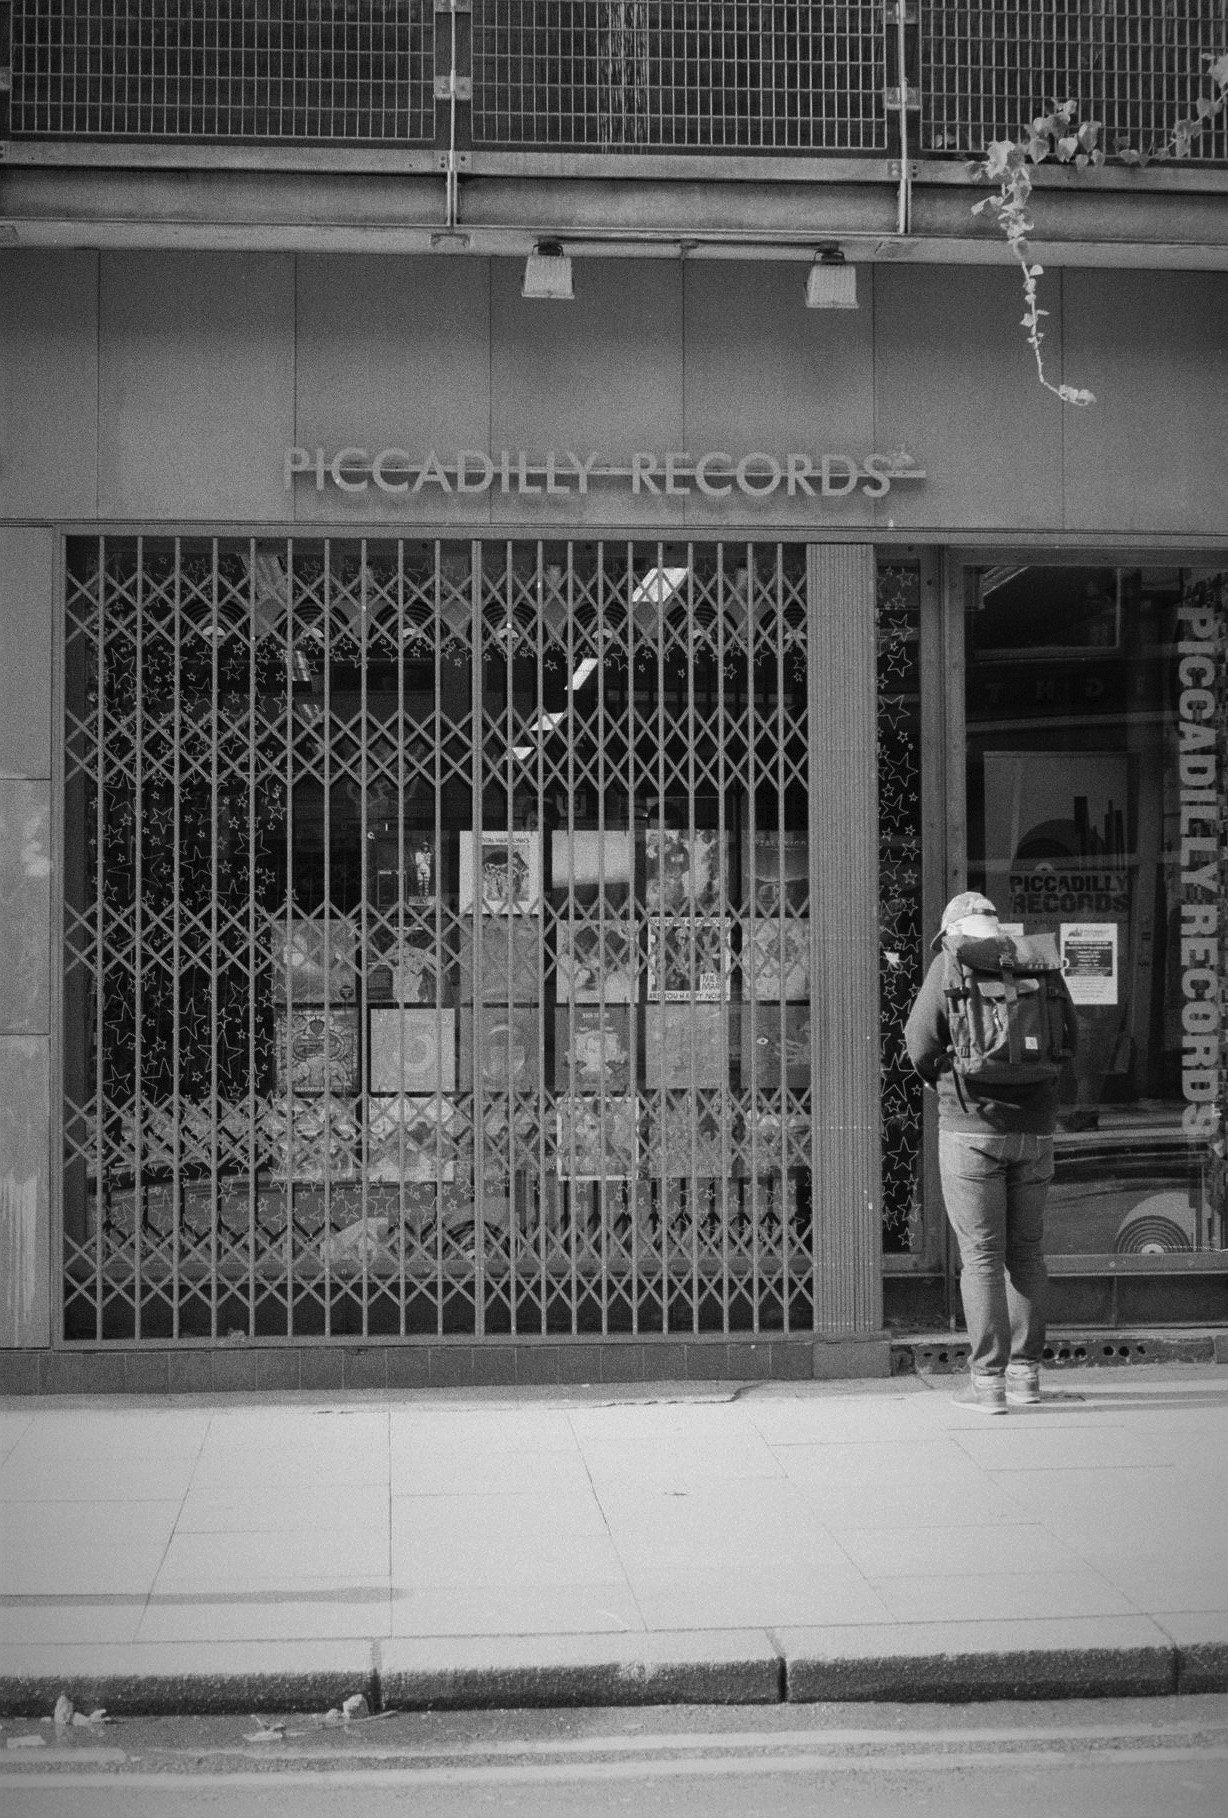 Kentmere 400 of Piccadilly Records in Manchester.